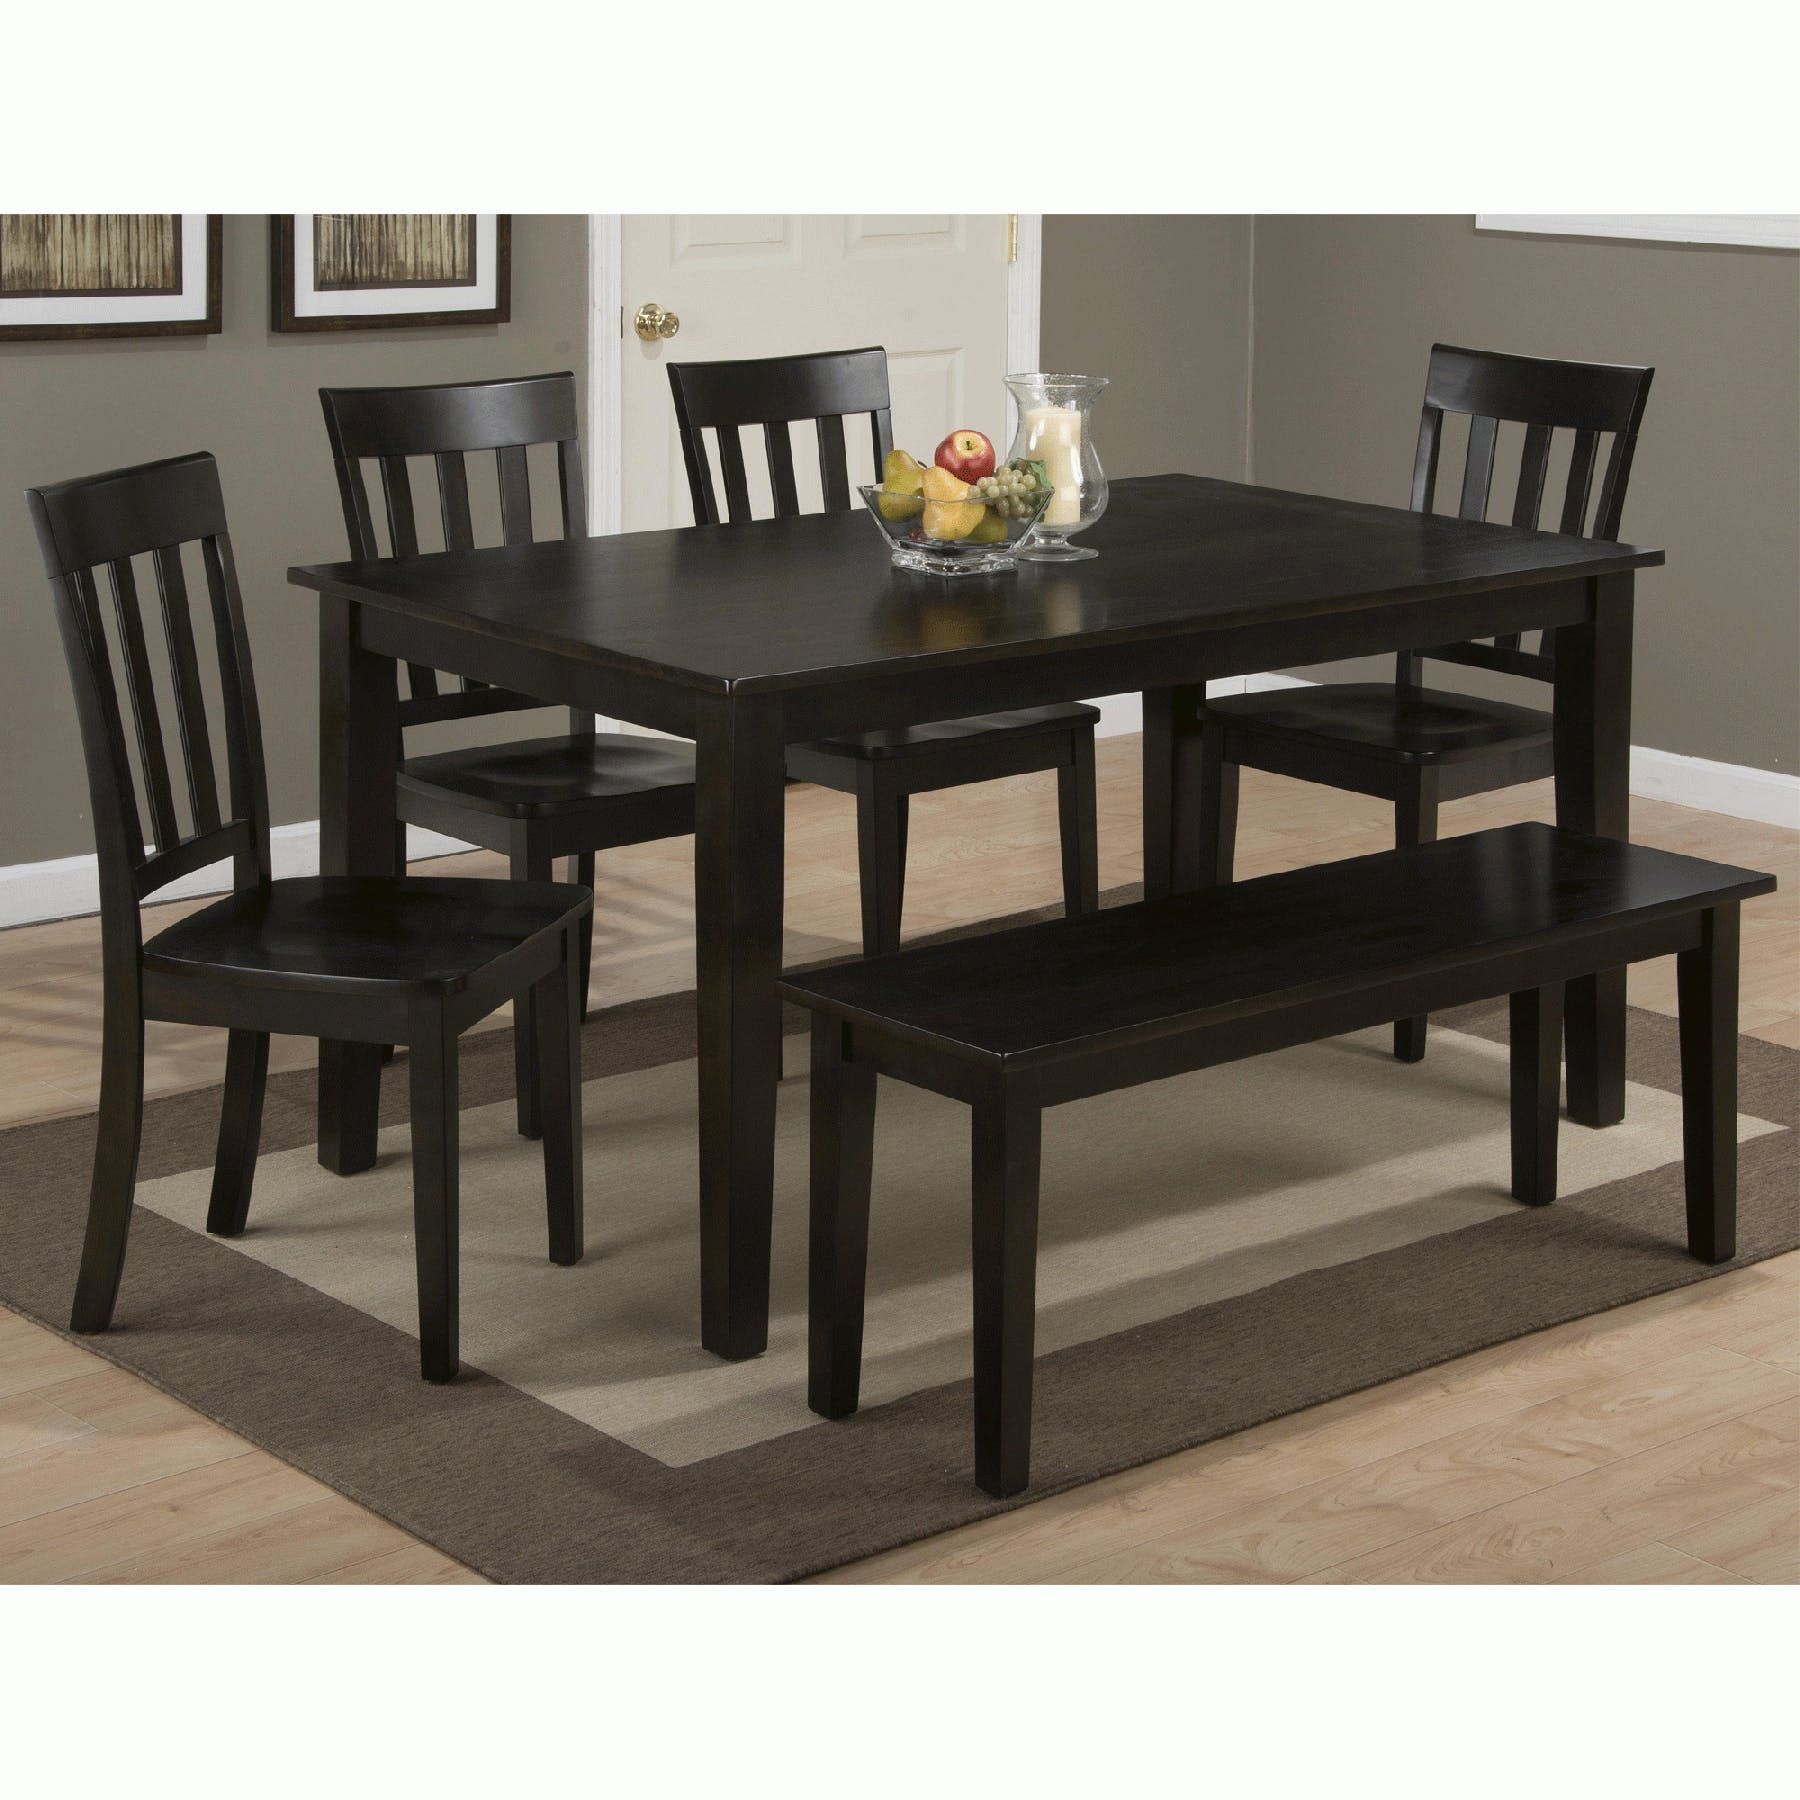 Simplicity Espresso 6 Piece Rectangular Set Rectangular Table